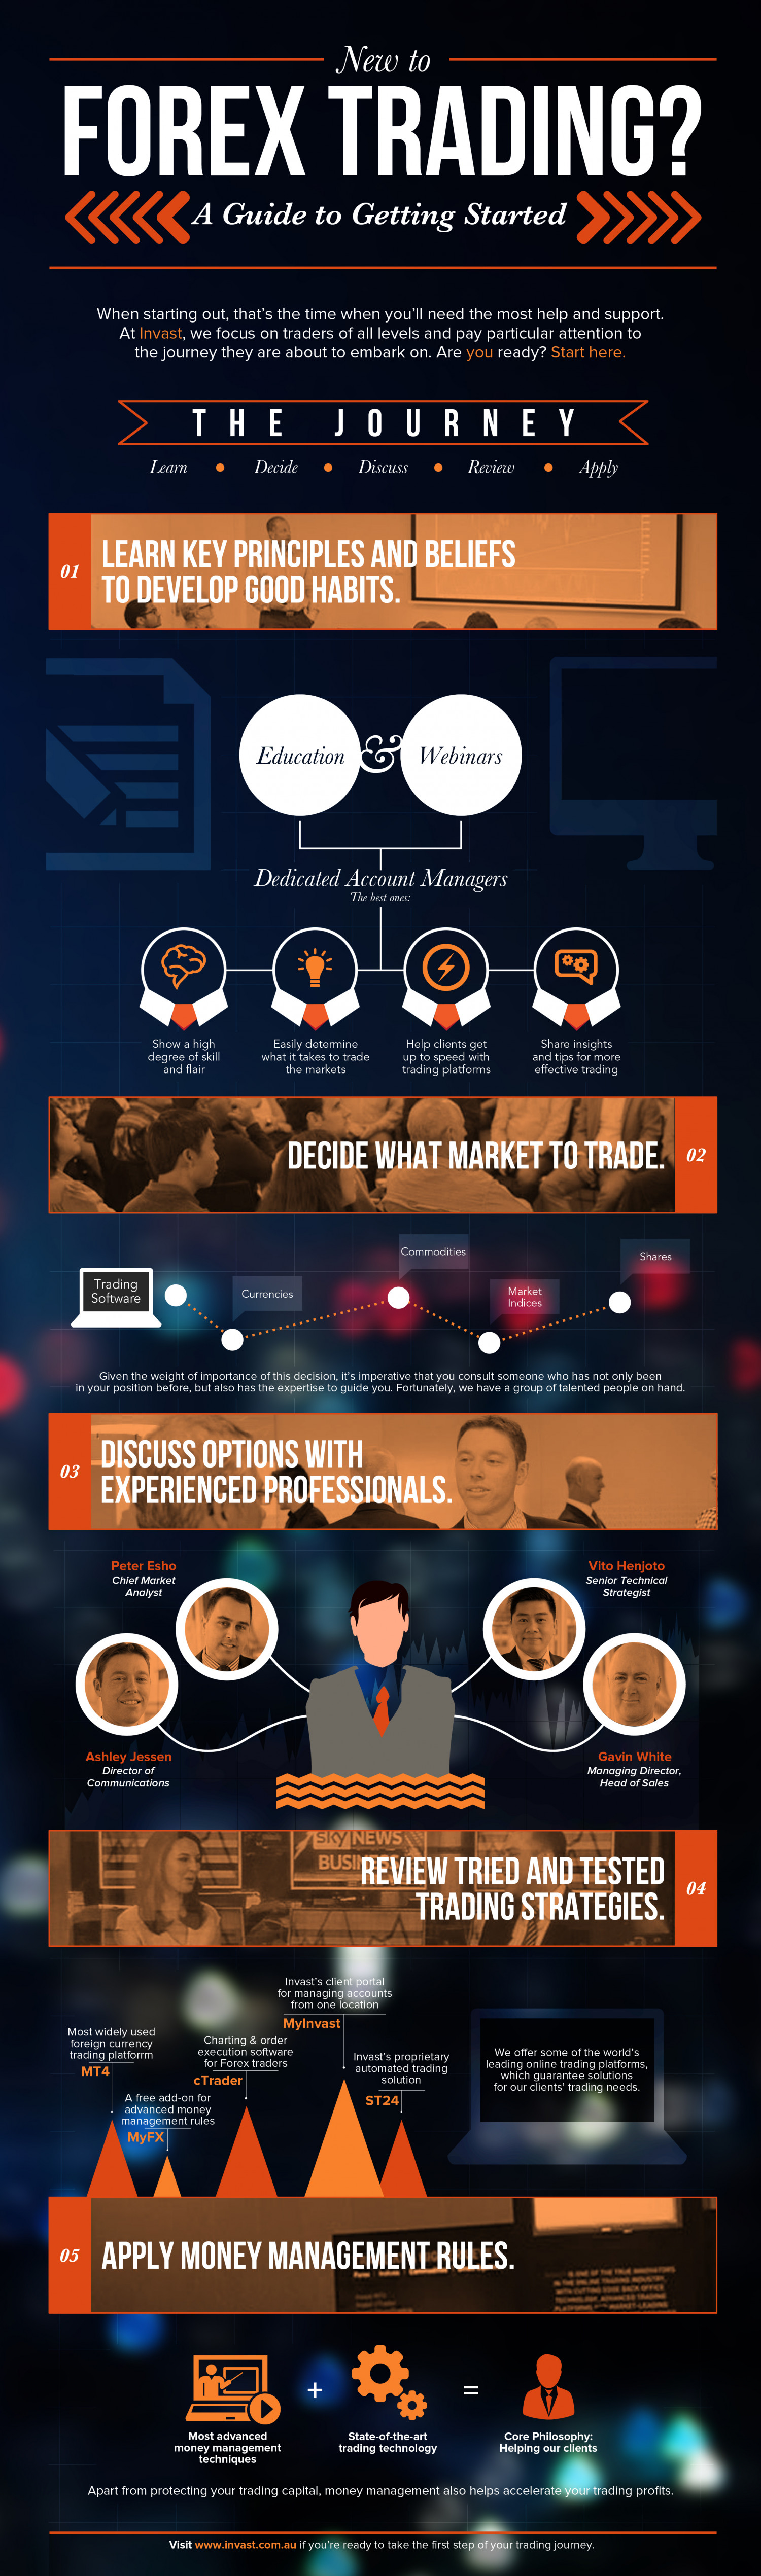 A Guide to Getting Started in Forex Trading Infographic